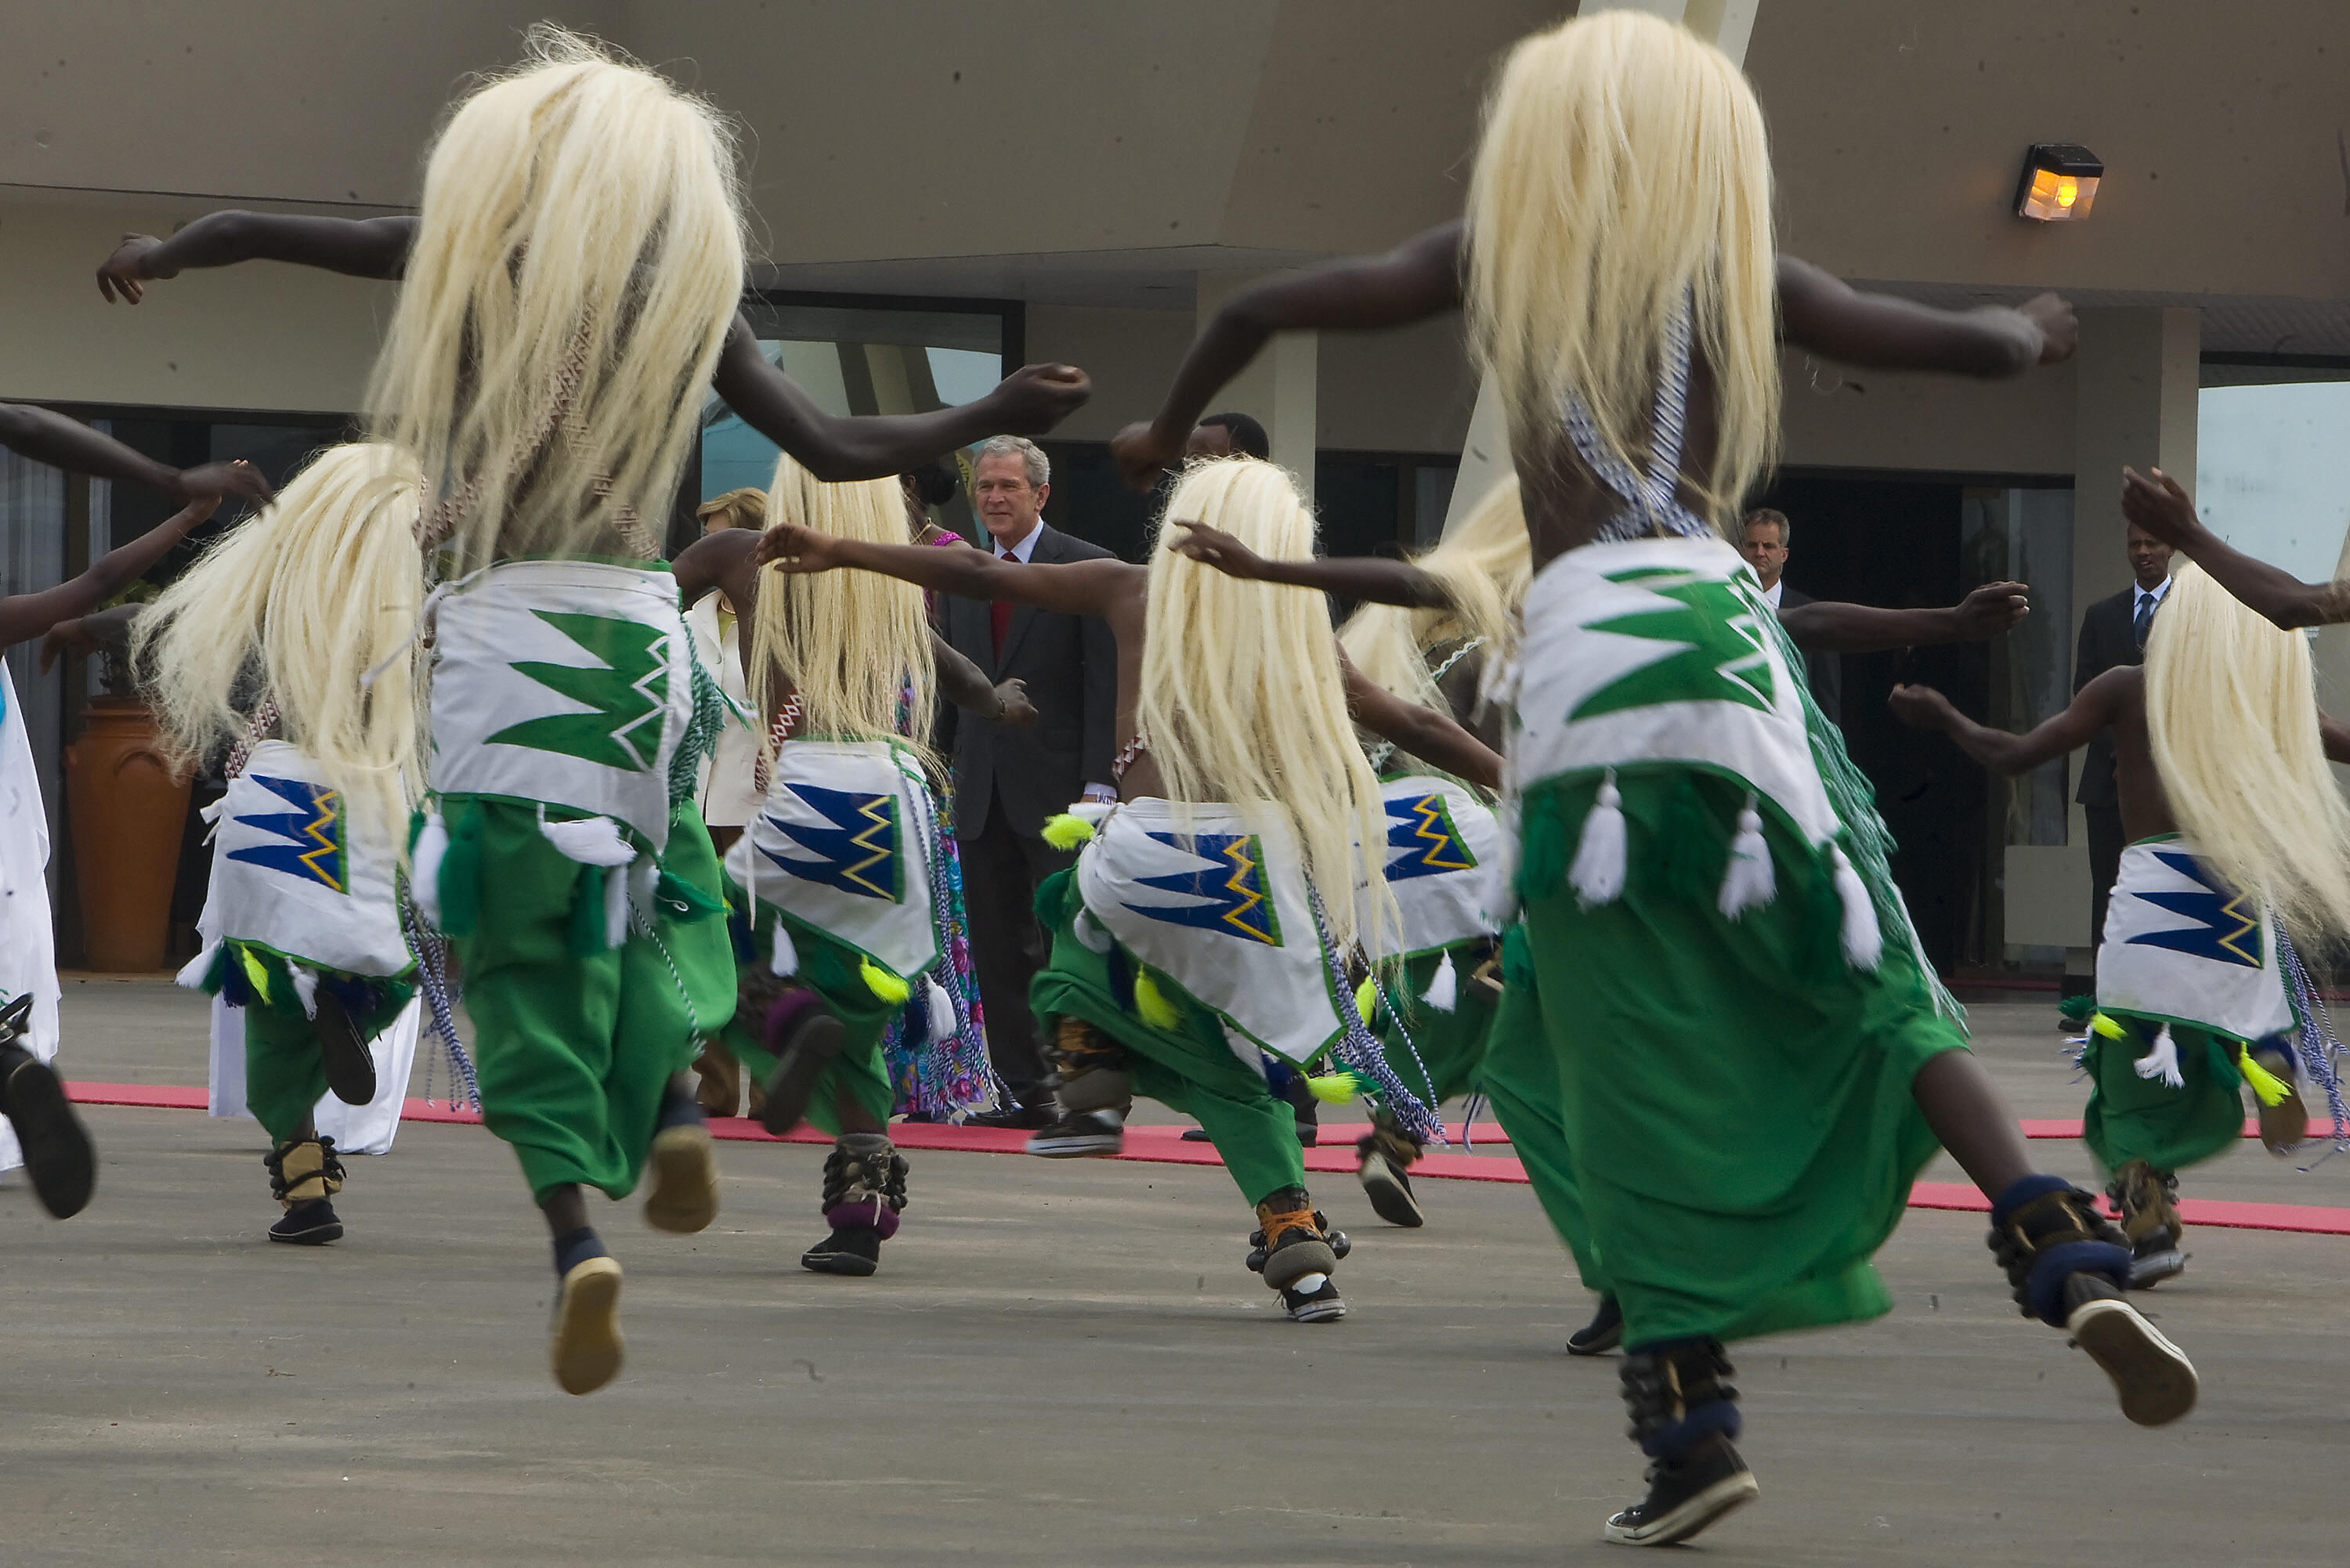 Dancers greet Bush when he arrives at the airport in Rwanda.